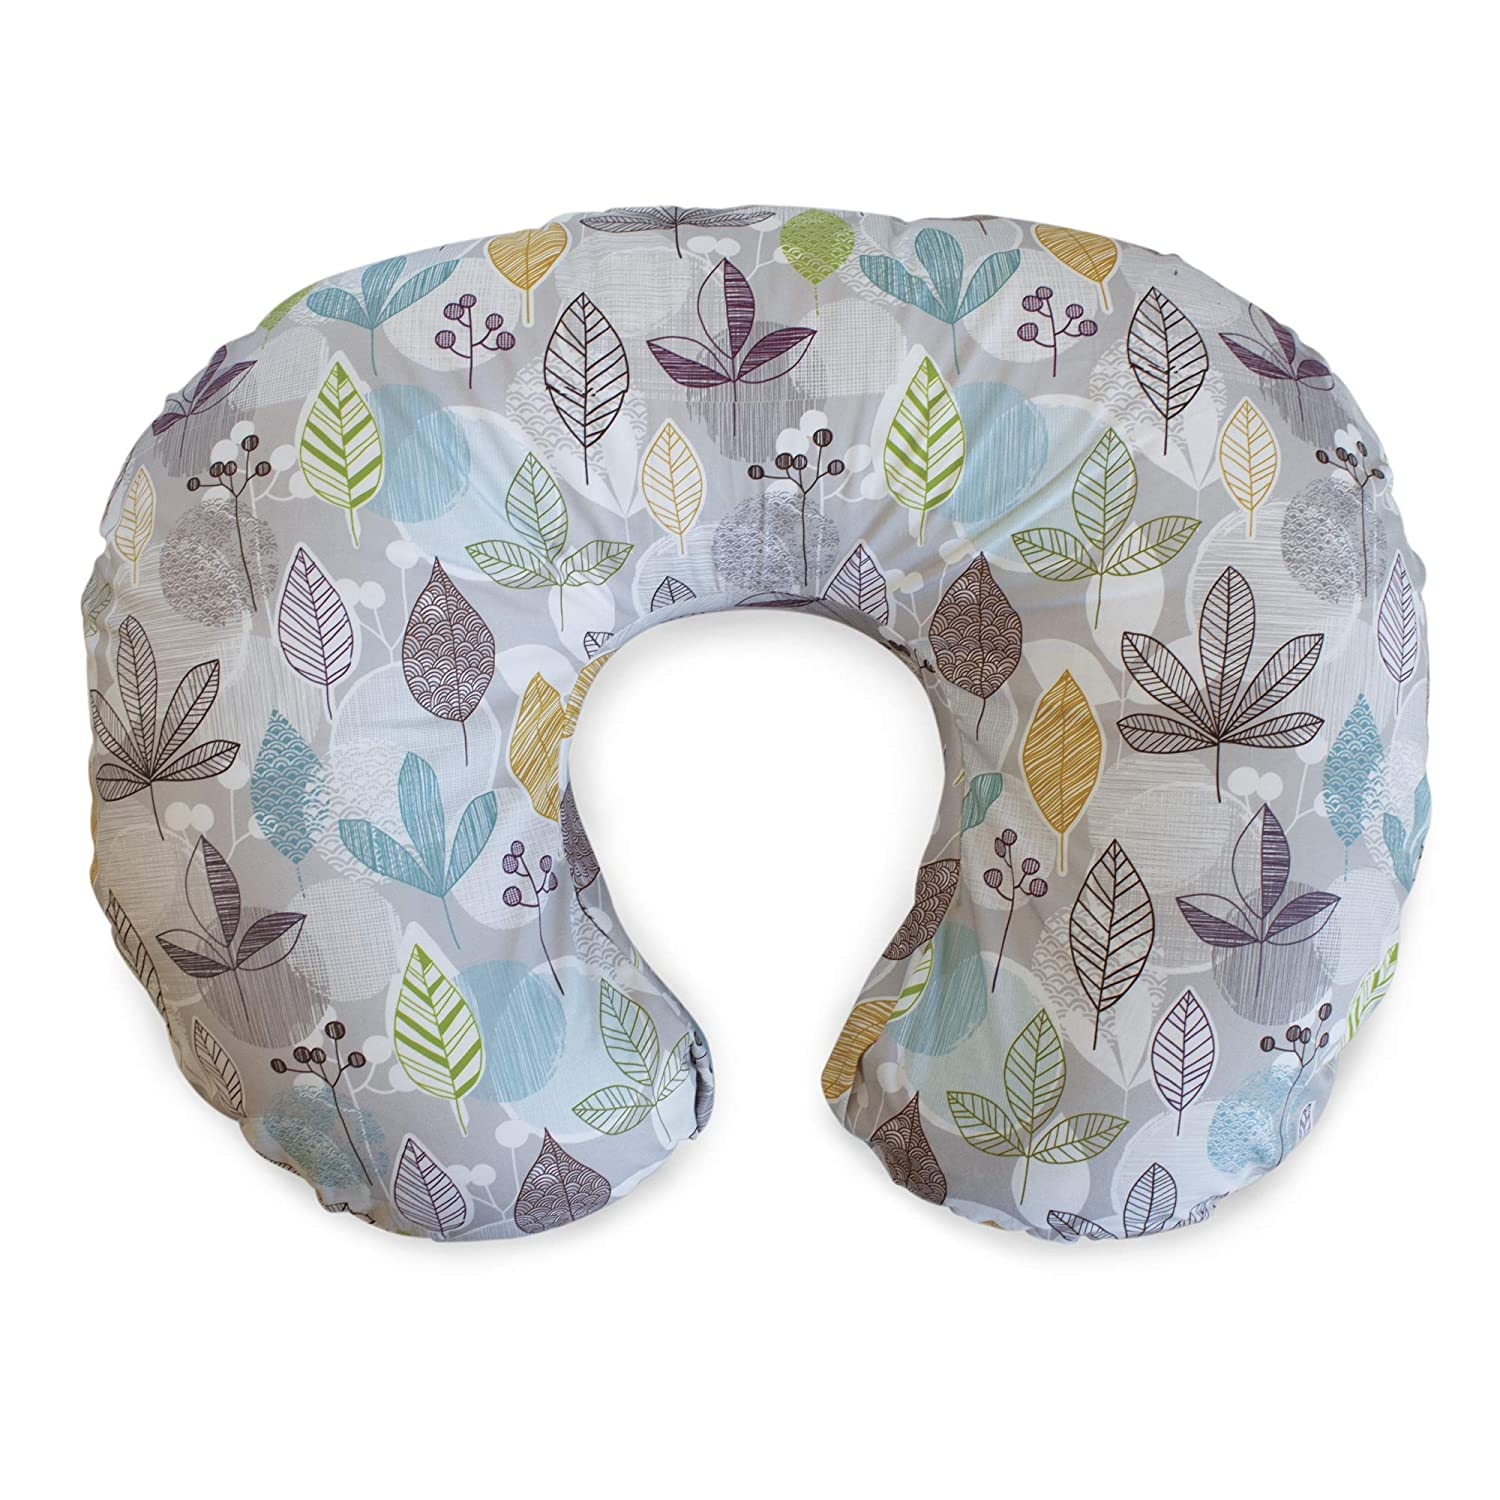 Boppy Cotton Blend Nursing Pillow and Positioner, Colorful Leaves The Boppy Company 2200719K AMZ